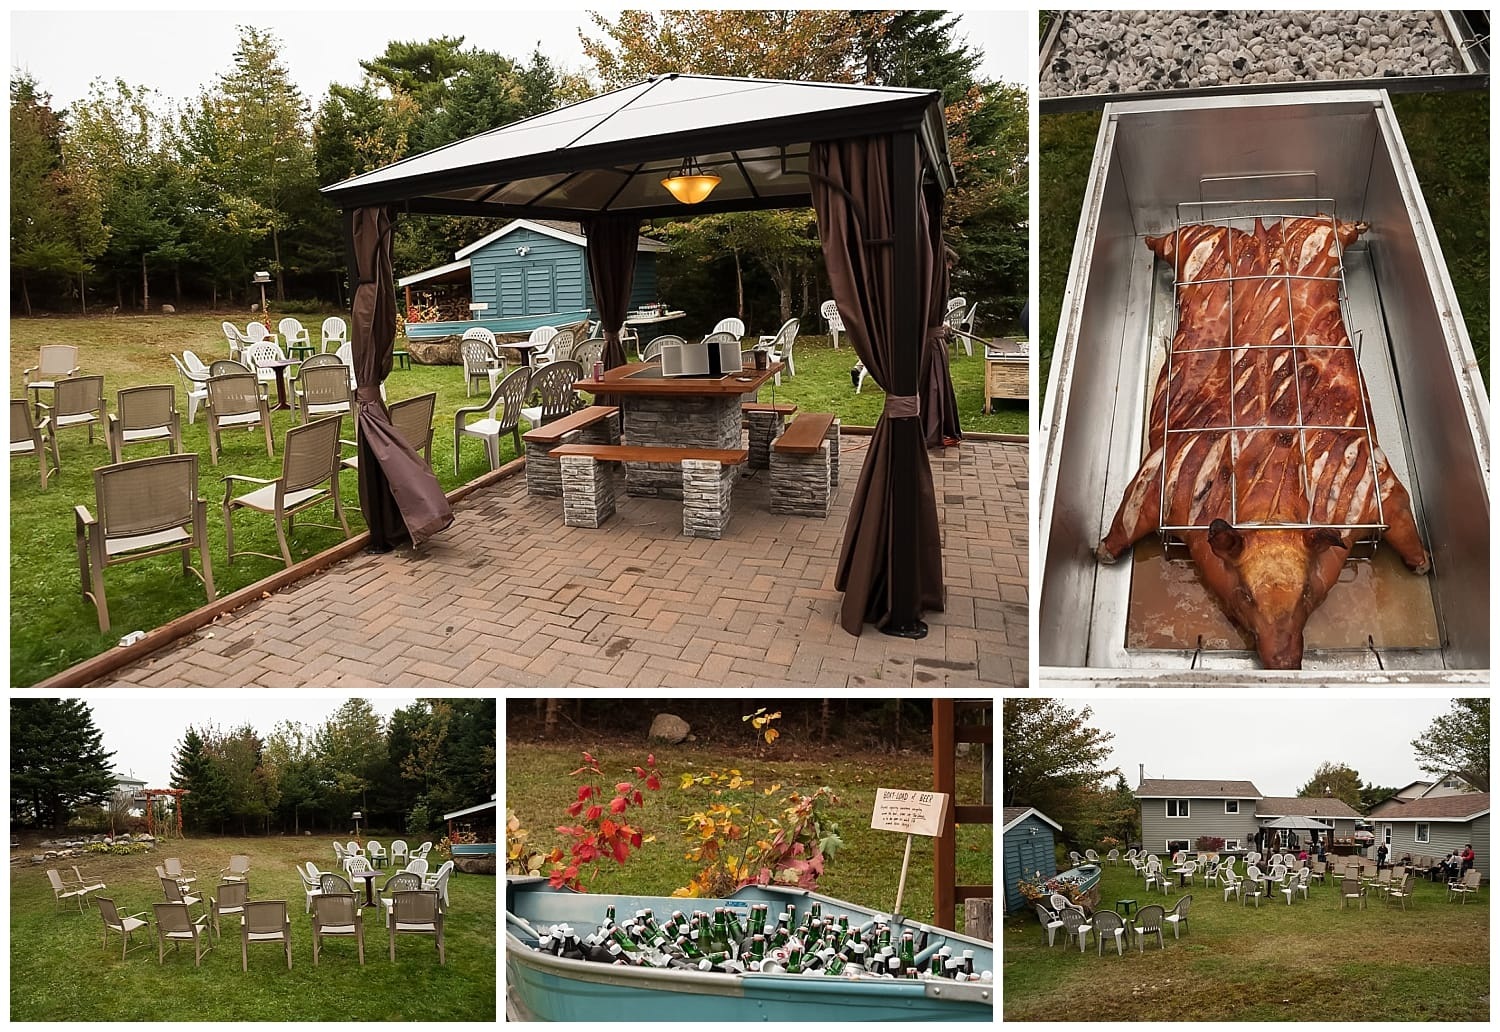 A backyard wedding set up for the autumn with a pig roast.